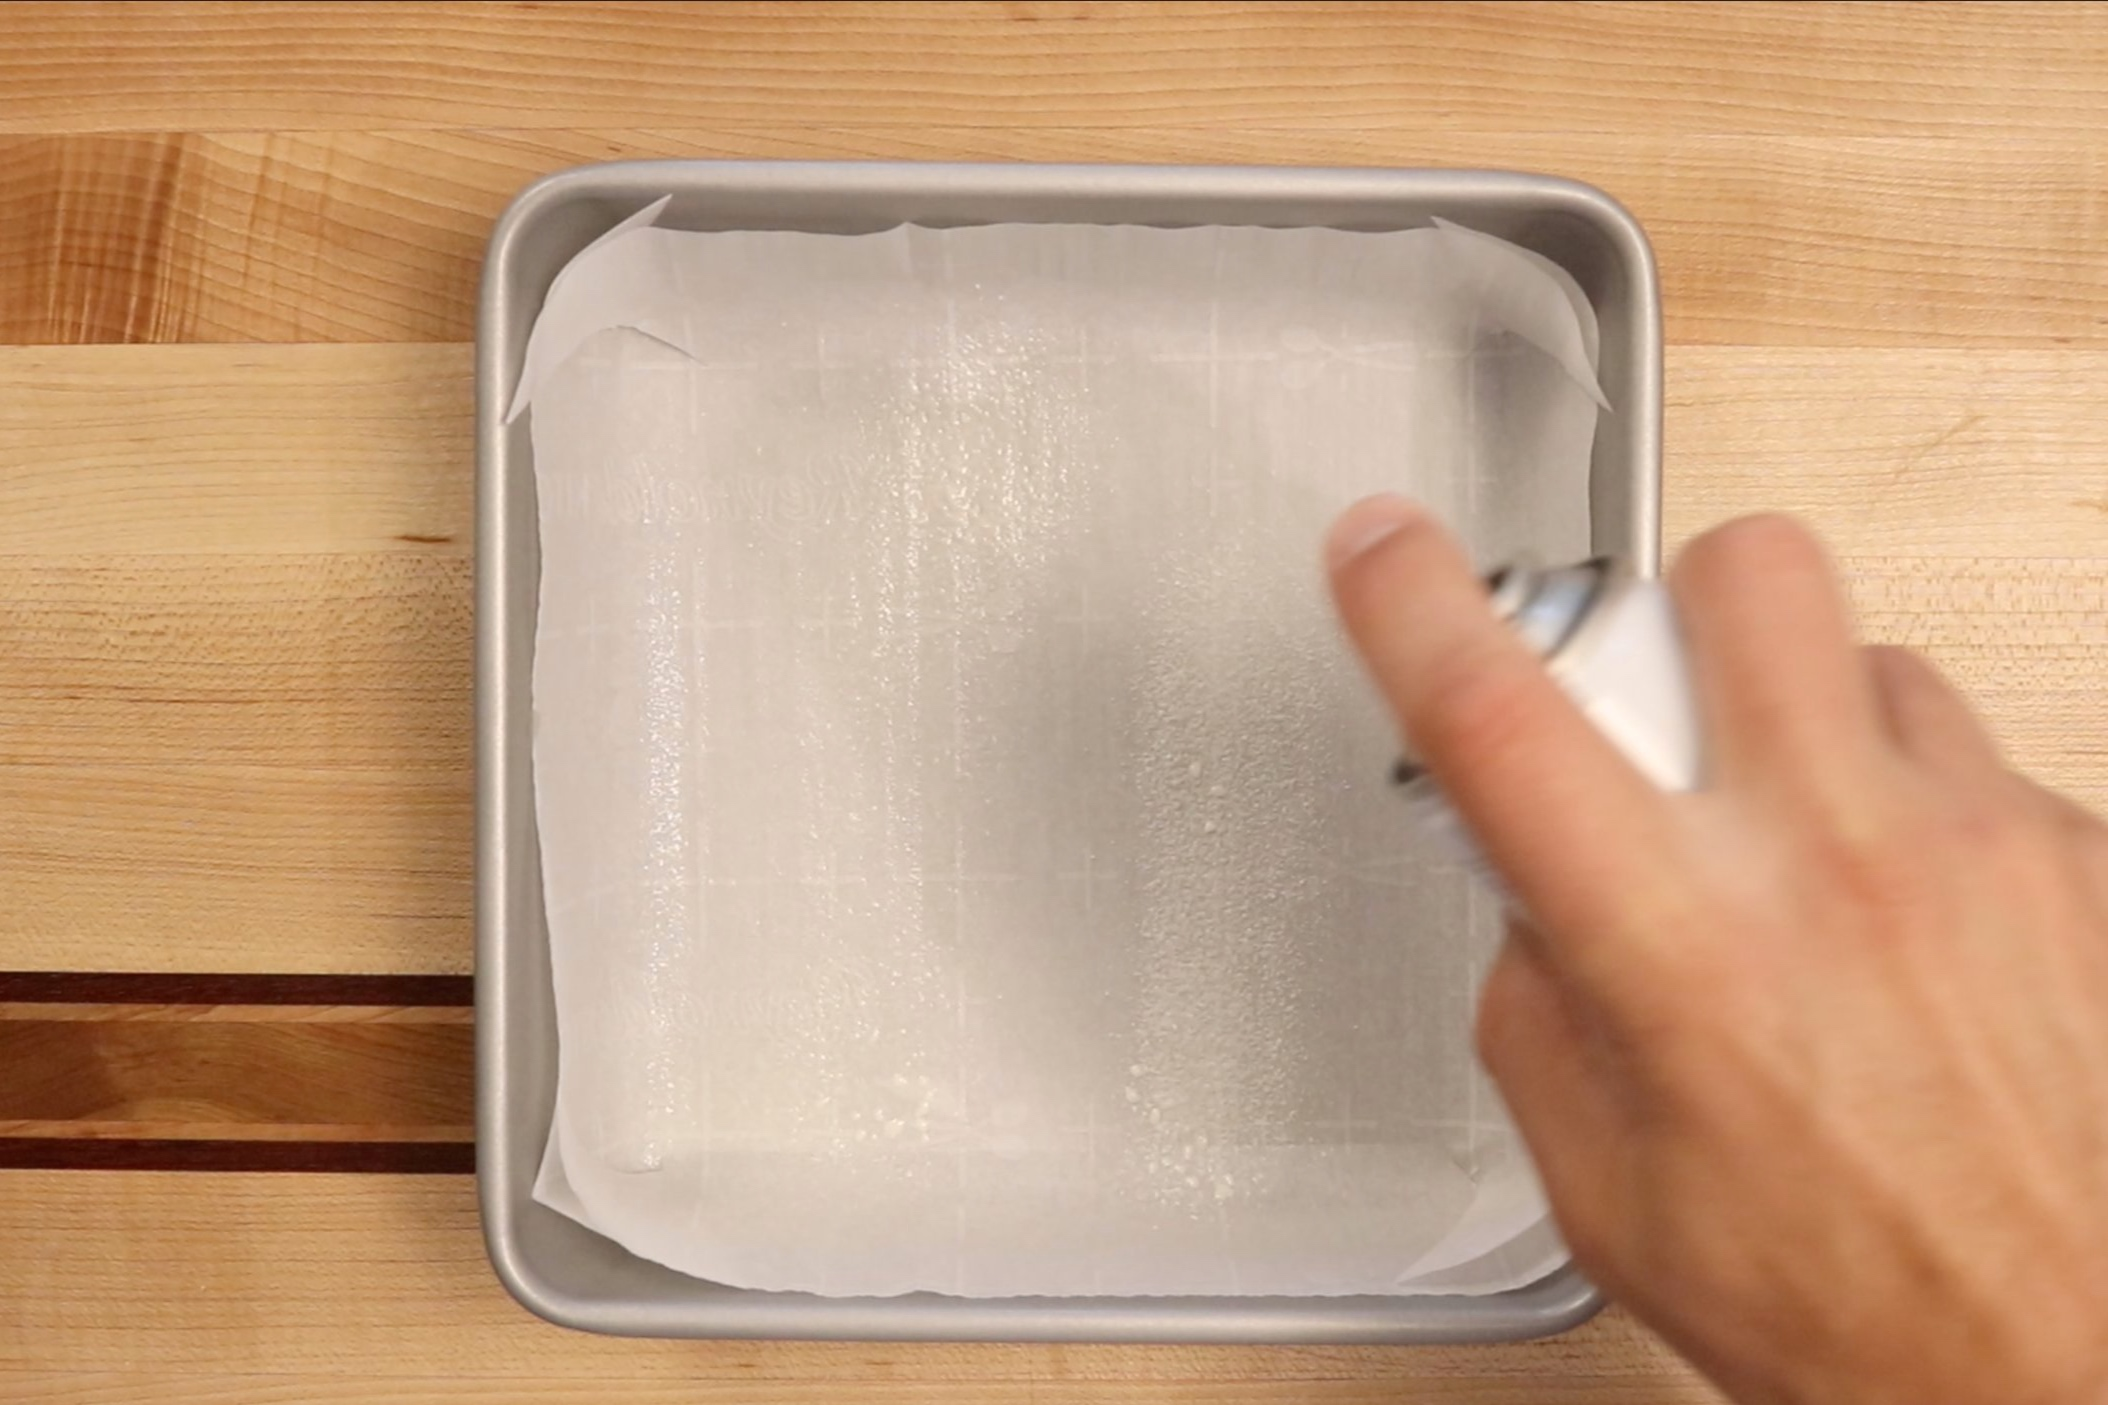 1. Preheat oven to 325 degrees. Line an 9 x 9 baking pan with parchment paper or grease with baking spray. -